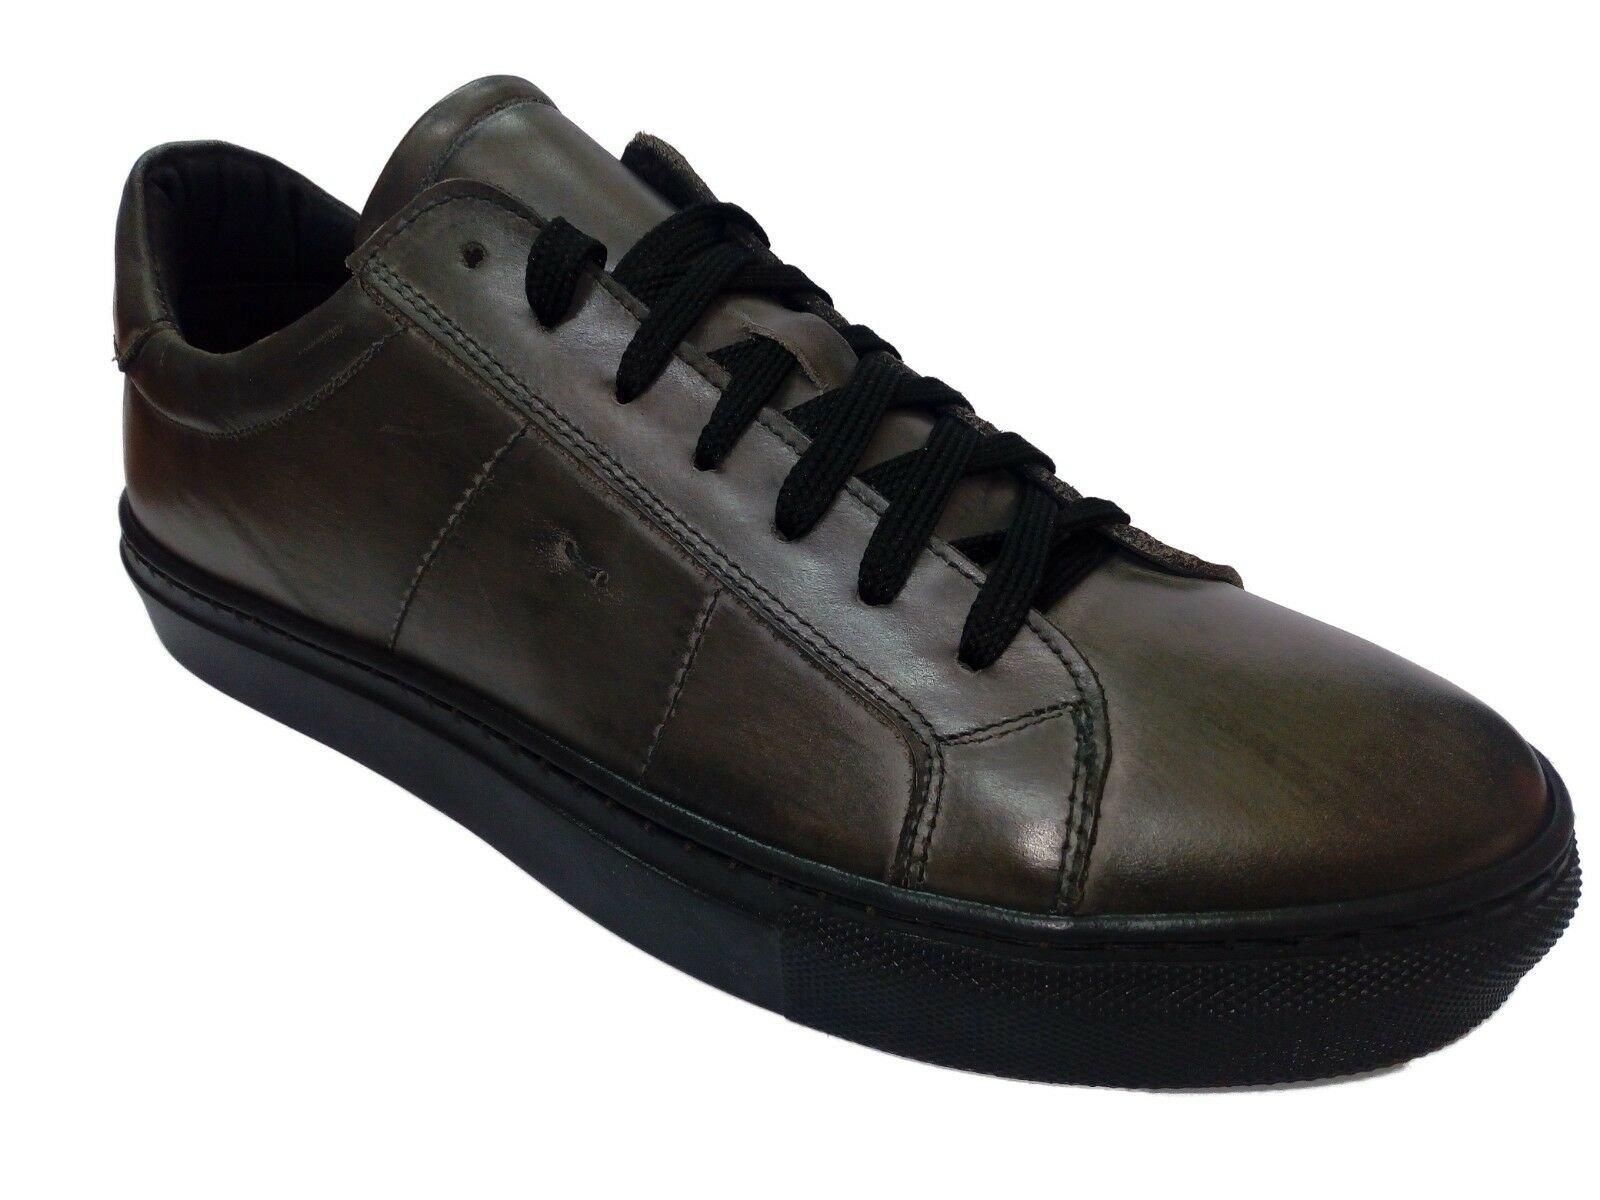 SCARPE UOMO  WEENCHESTER  UOMO SNEAKERS BASSA in PELLE GRIGIO MADE in ITALY TG 41 b3bbcf